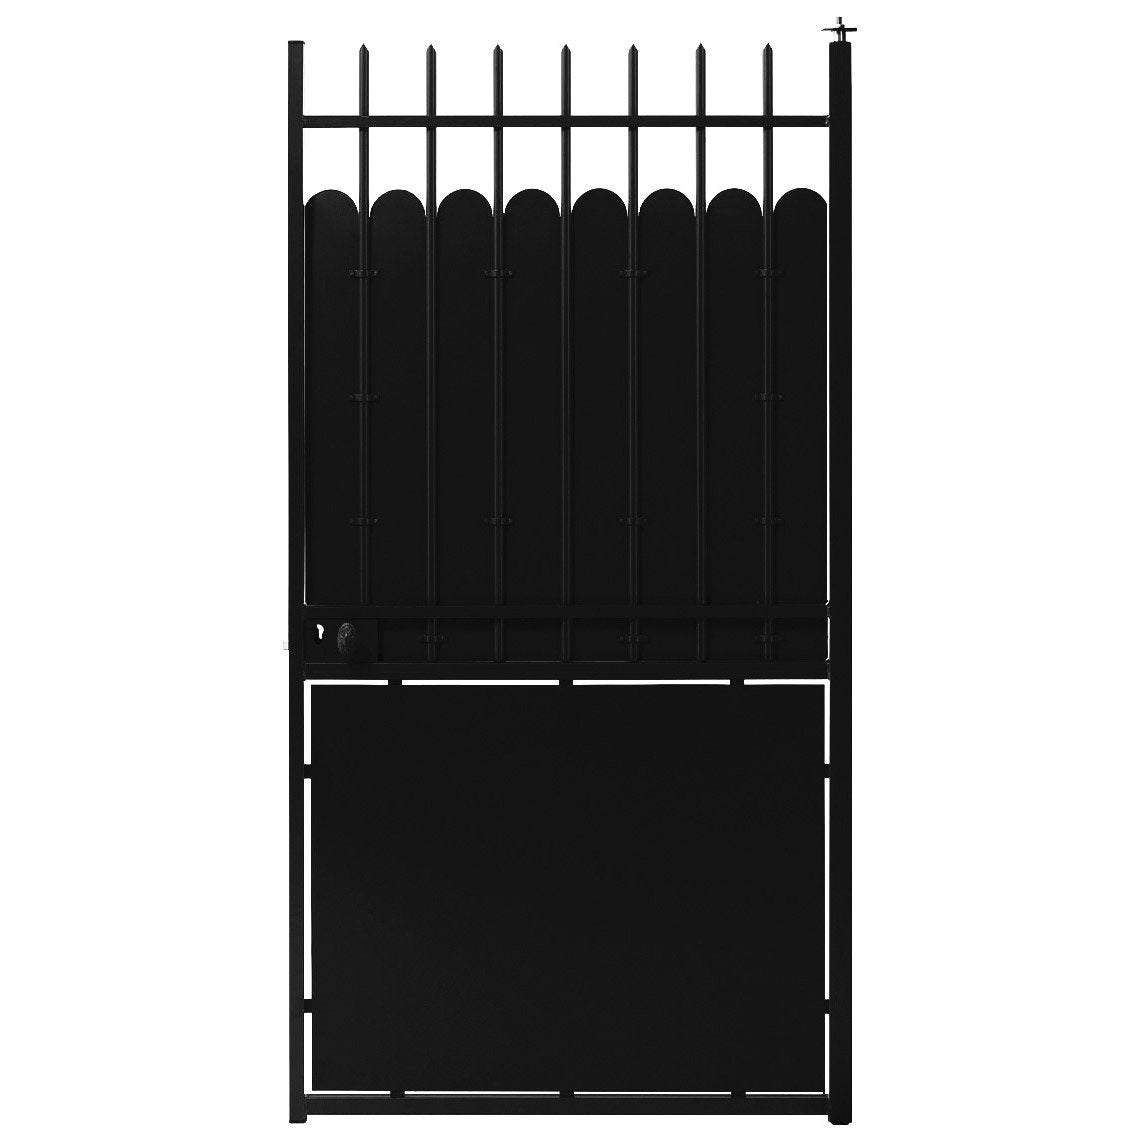 portillon battant en fer hauteclaire x cm leroy merlin. Black Bedroom Furniture Sets. Home Design Ideas